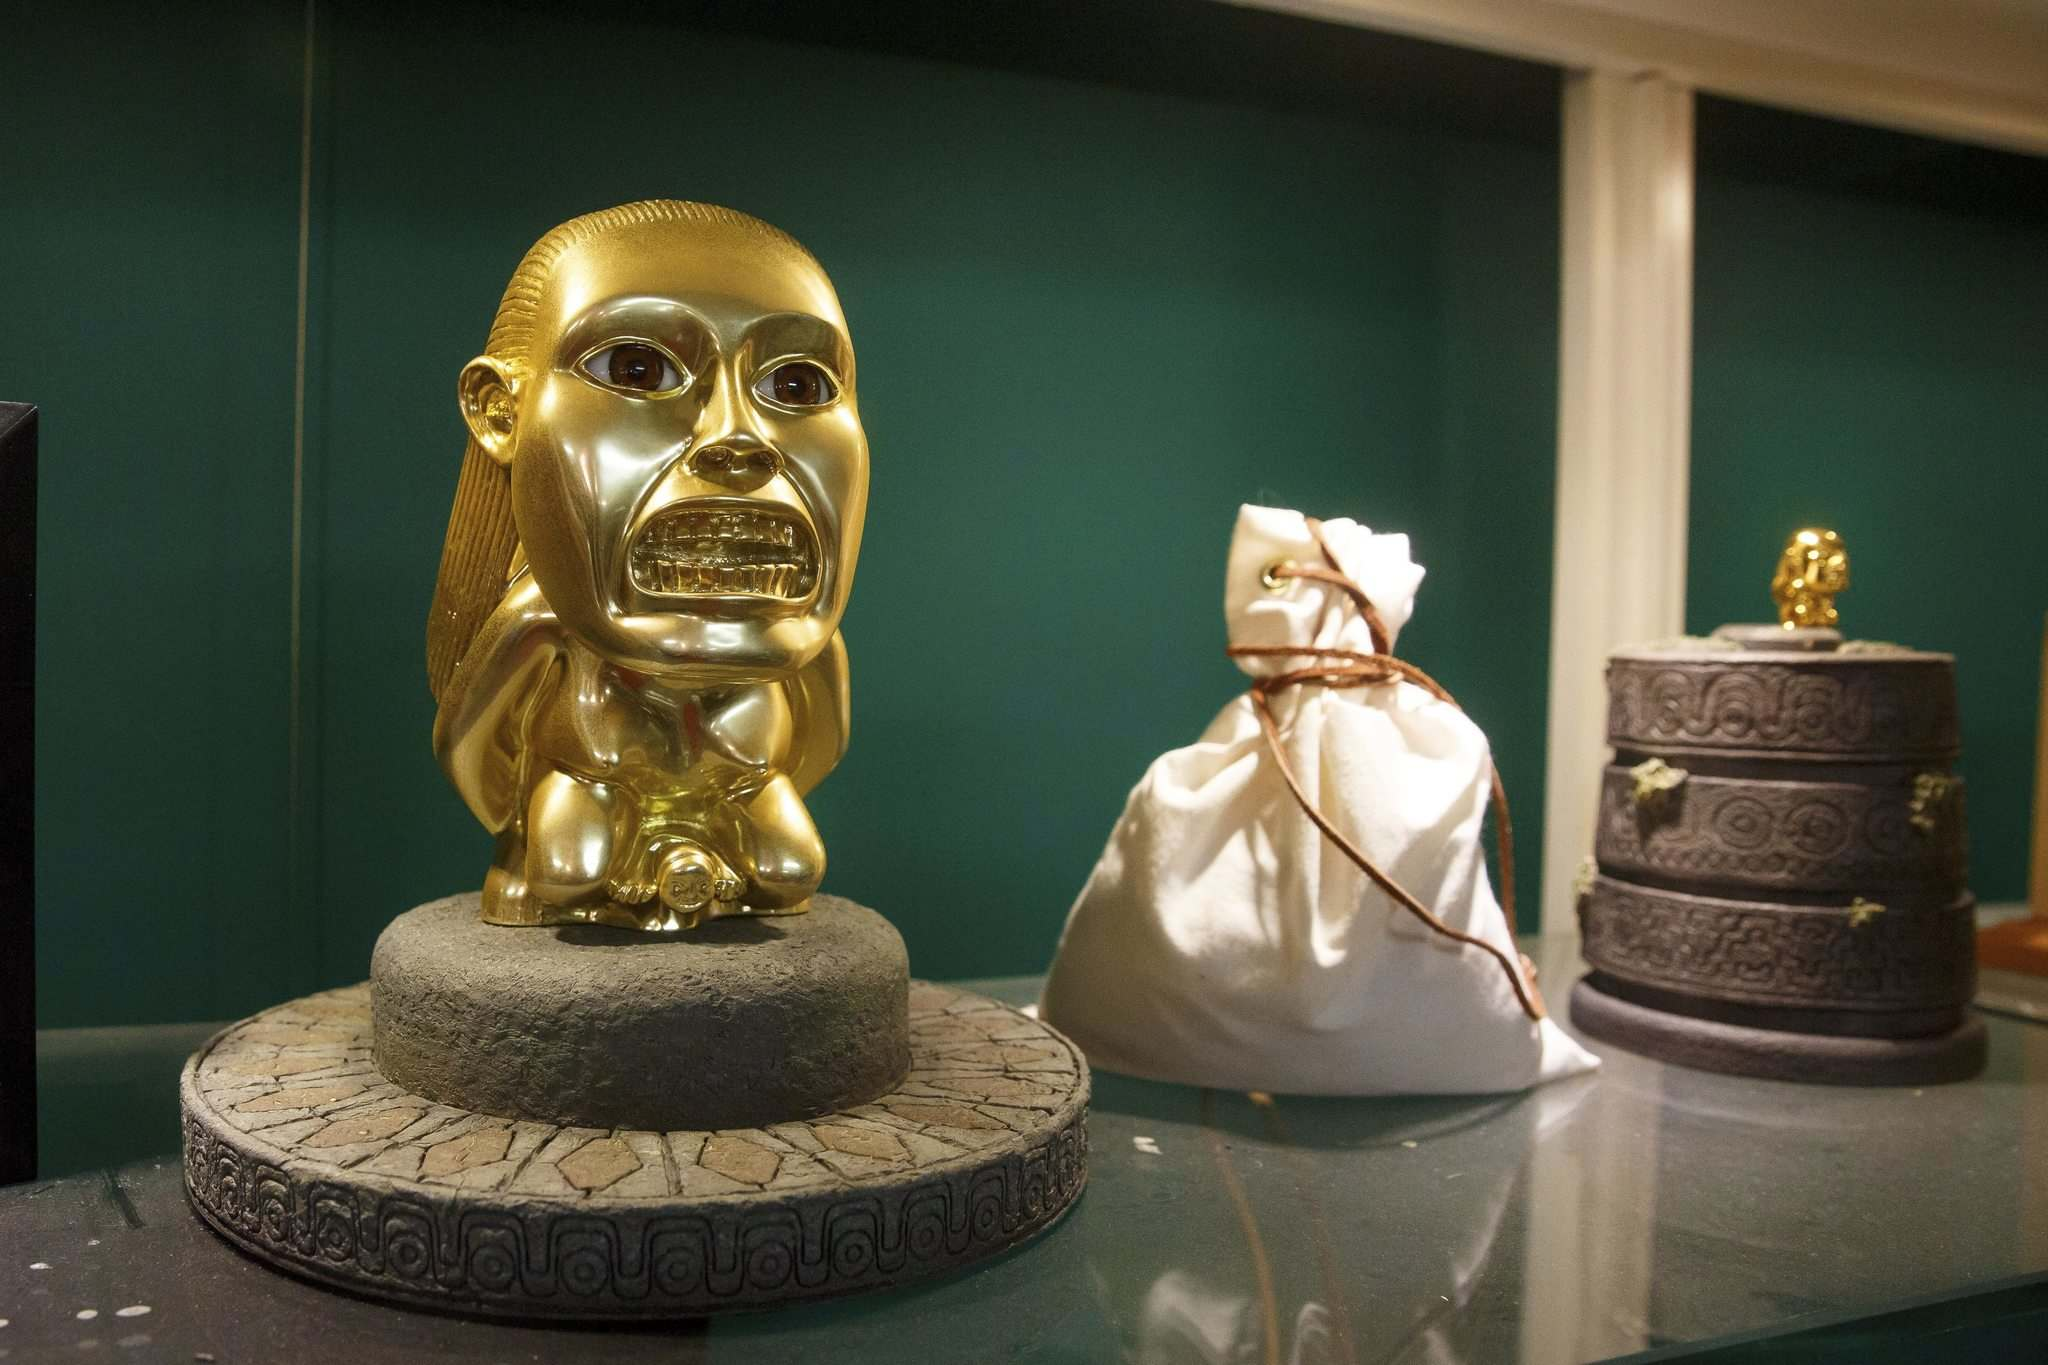 A replica of the idol and bag of sand from the first movie, Raiders of the Lost Ark. Interesting note is that this replica has the open eyes that were supposed to be on the one in the movie. The idol in the movie had eyes that opened mysteriously, but when they didn't work it was decided to continue with the shoot, so, most replicas show the eyes closed.</p>